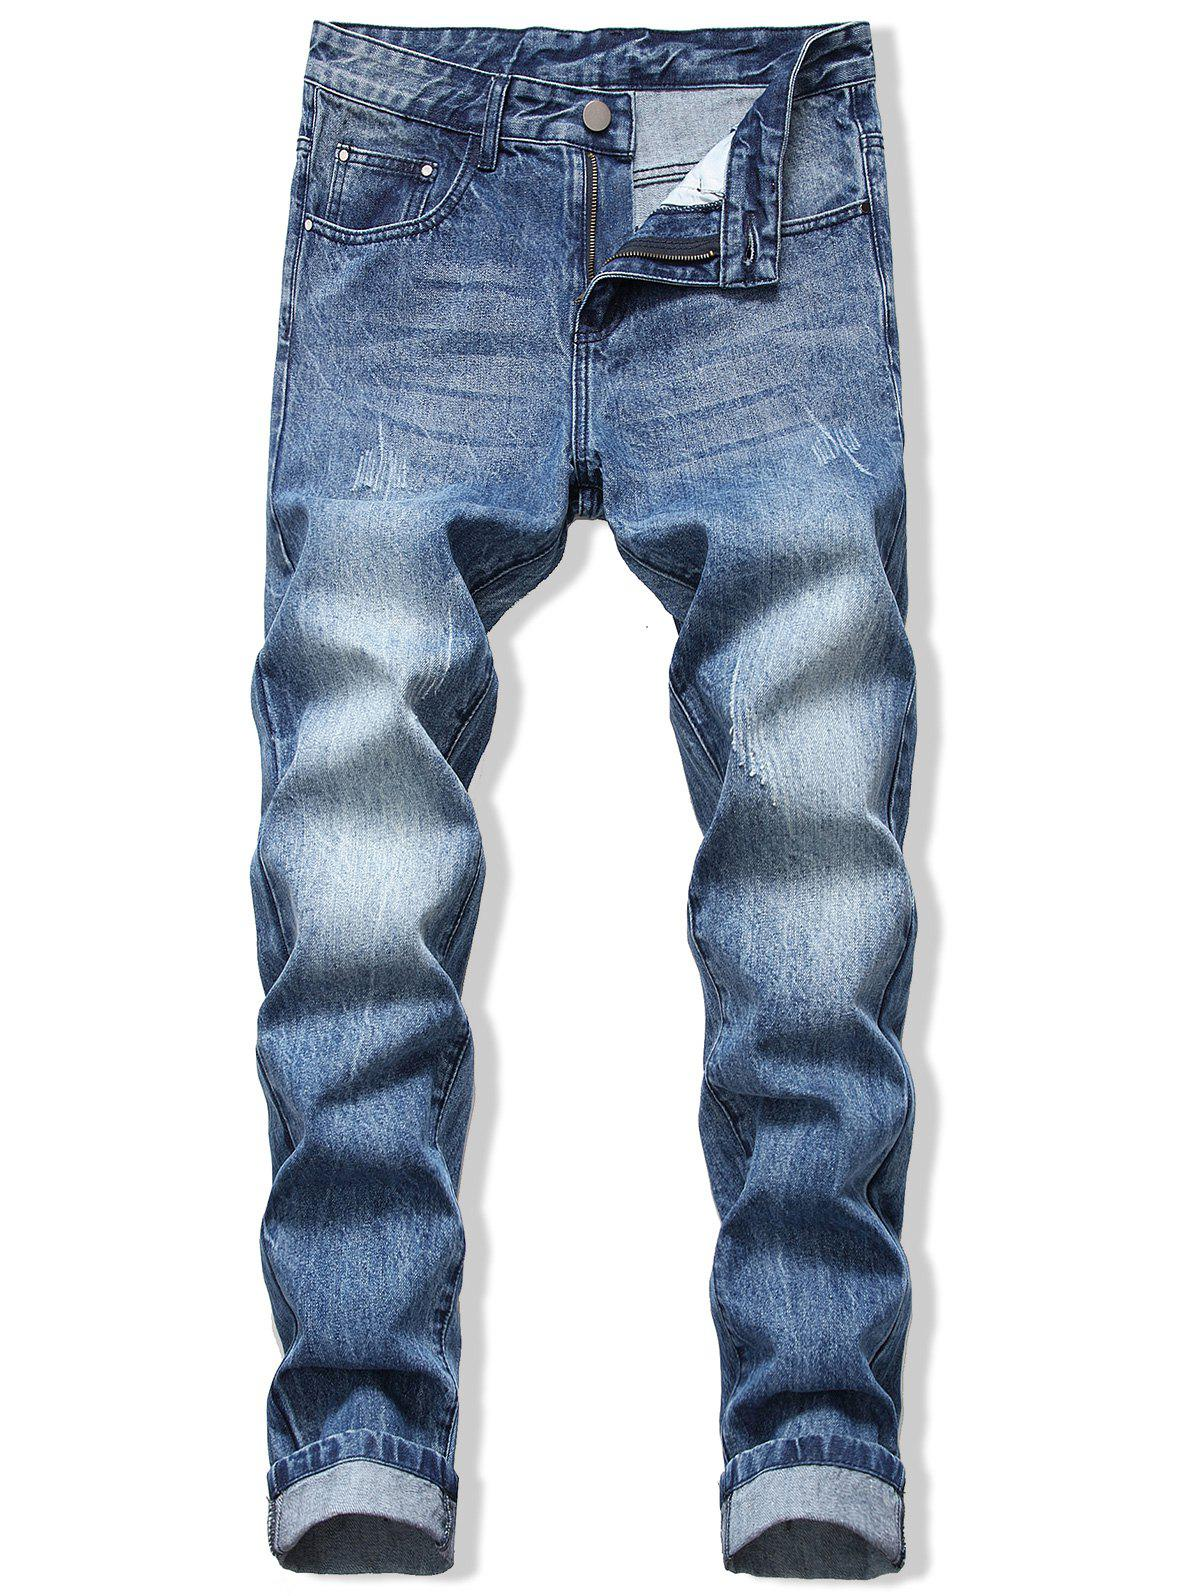 Long Straight Scratch Casual Jeans - DEEP BLUE 38